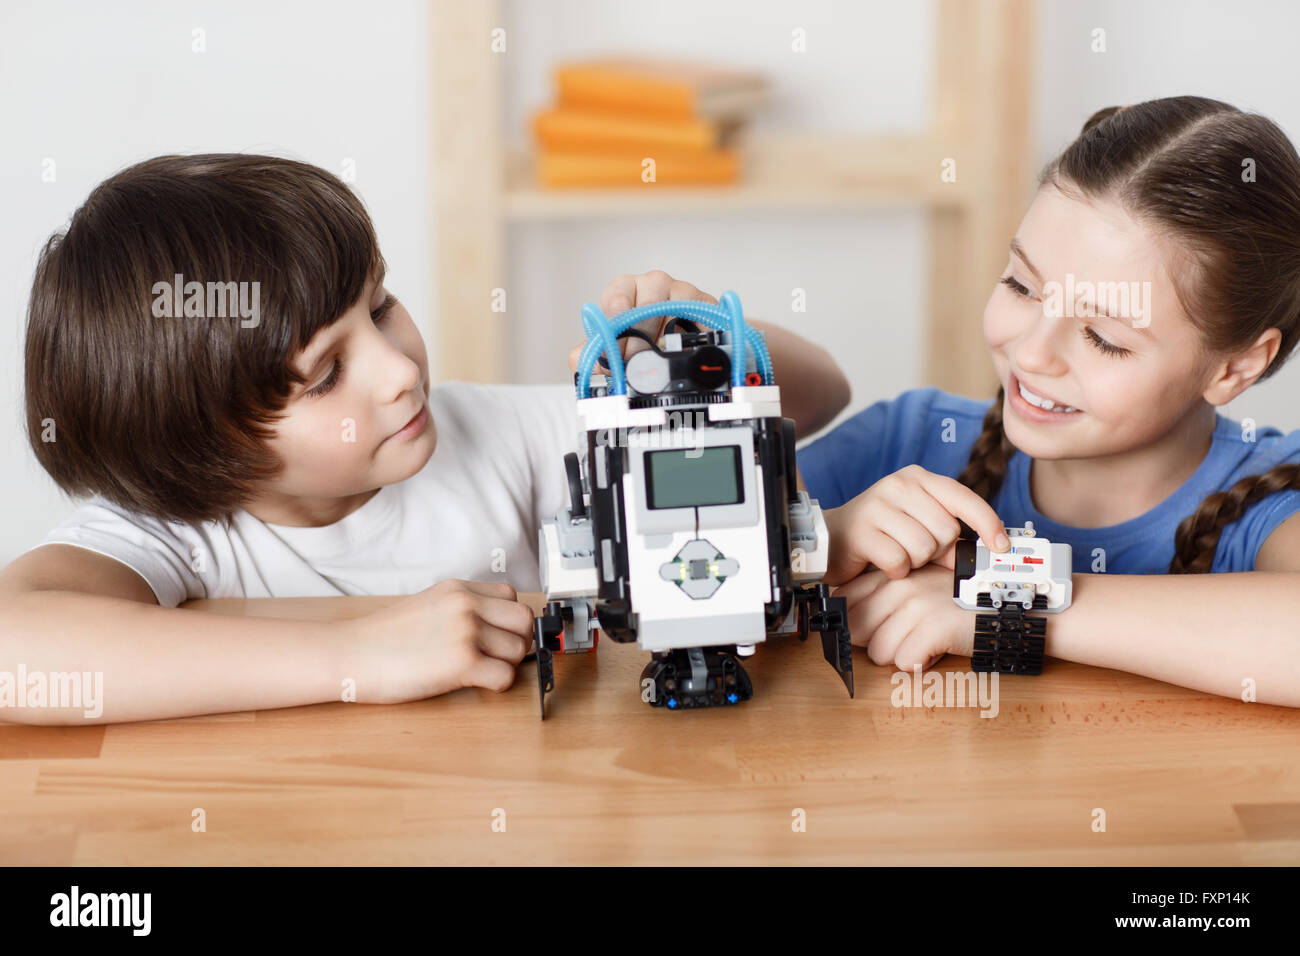 Positive children playing with robot - Stock Image